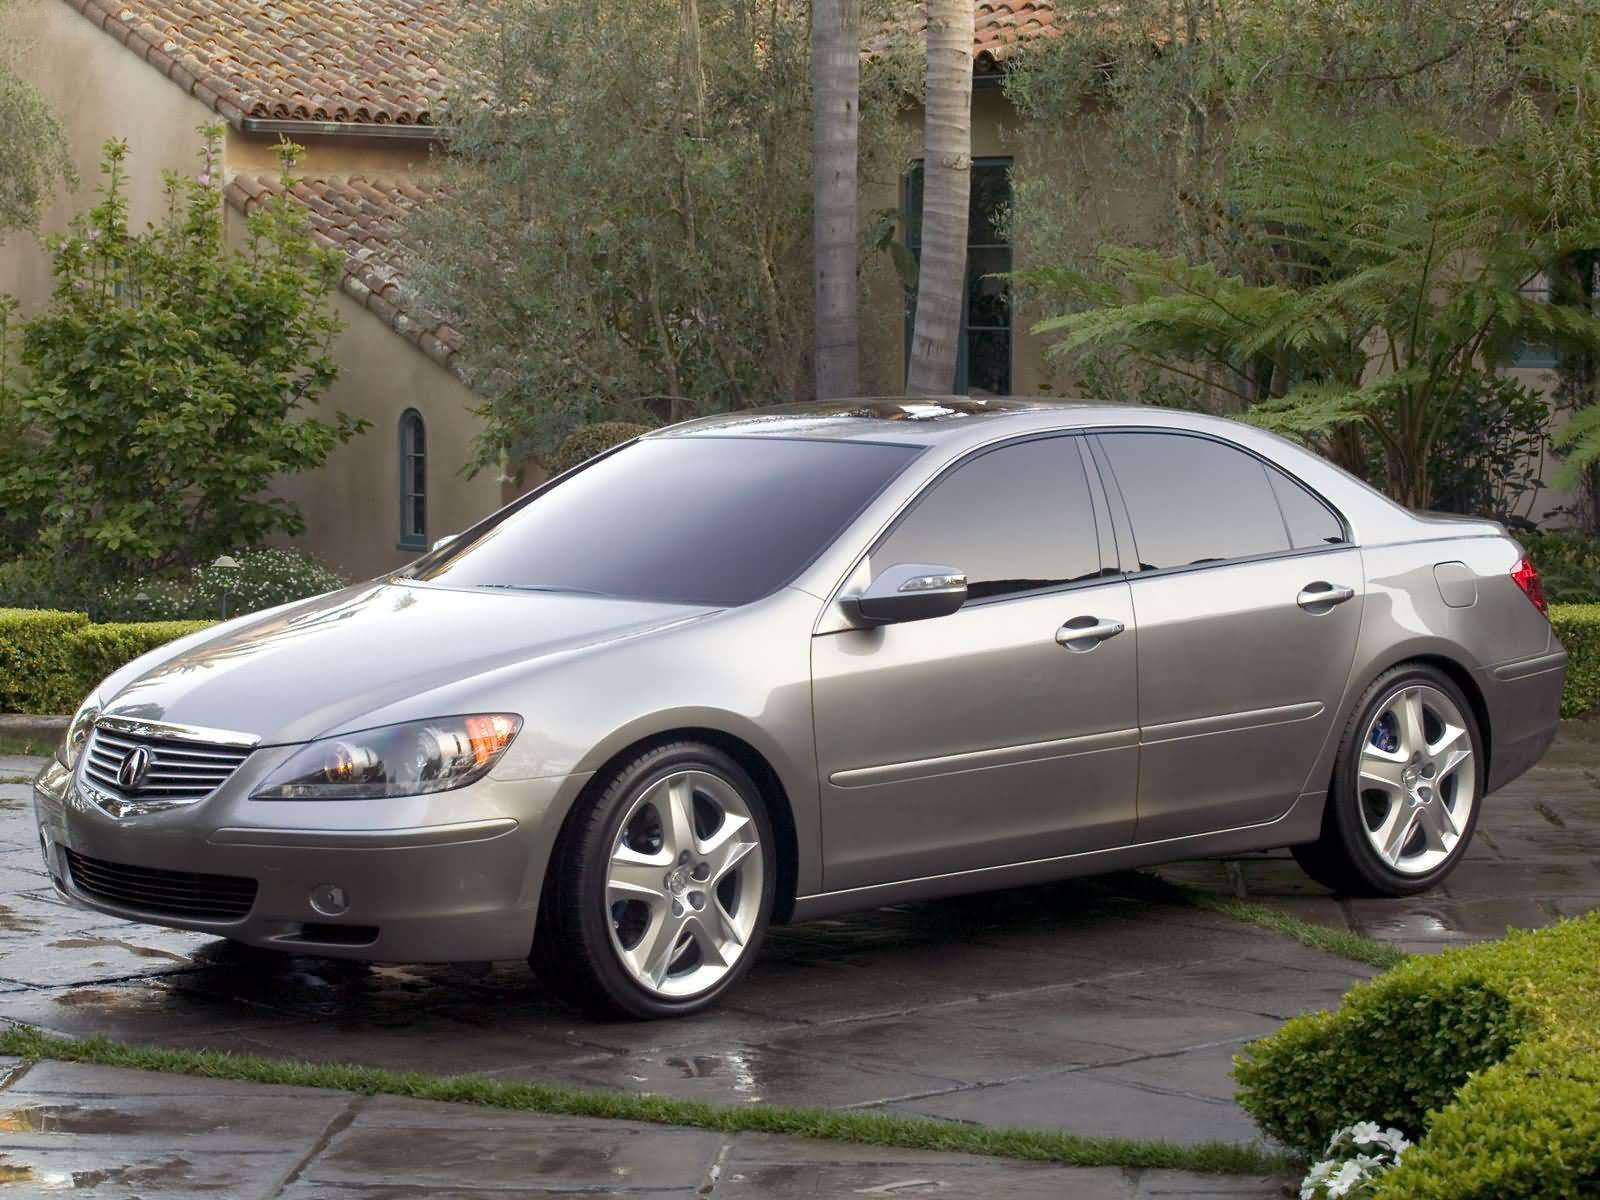 Japanese Car Photos 2004 ACURA RL Prototype